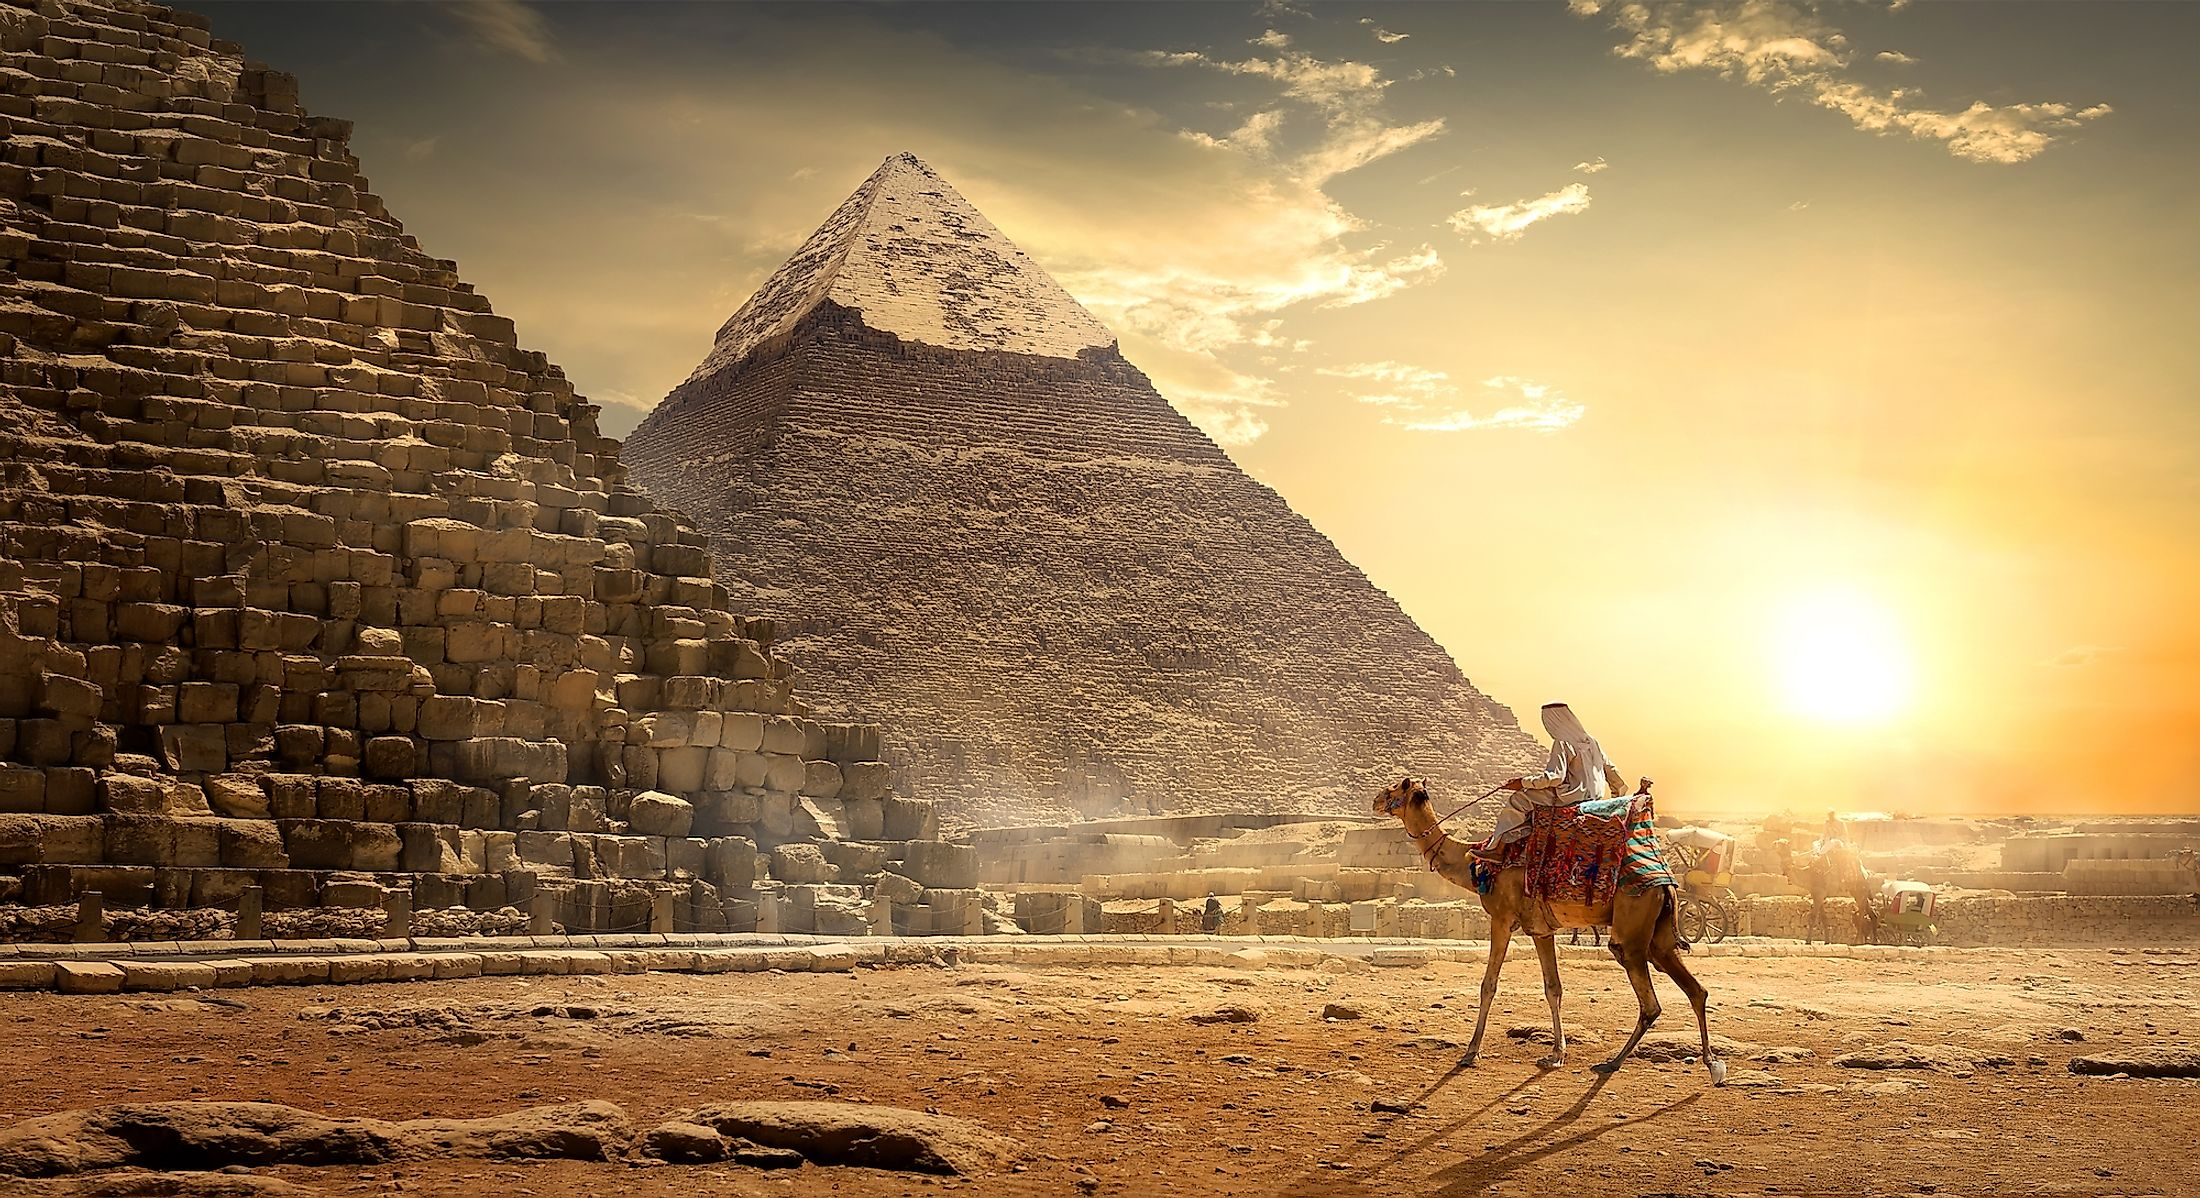 The Pyramids of Giza.